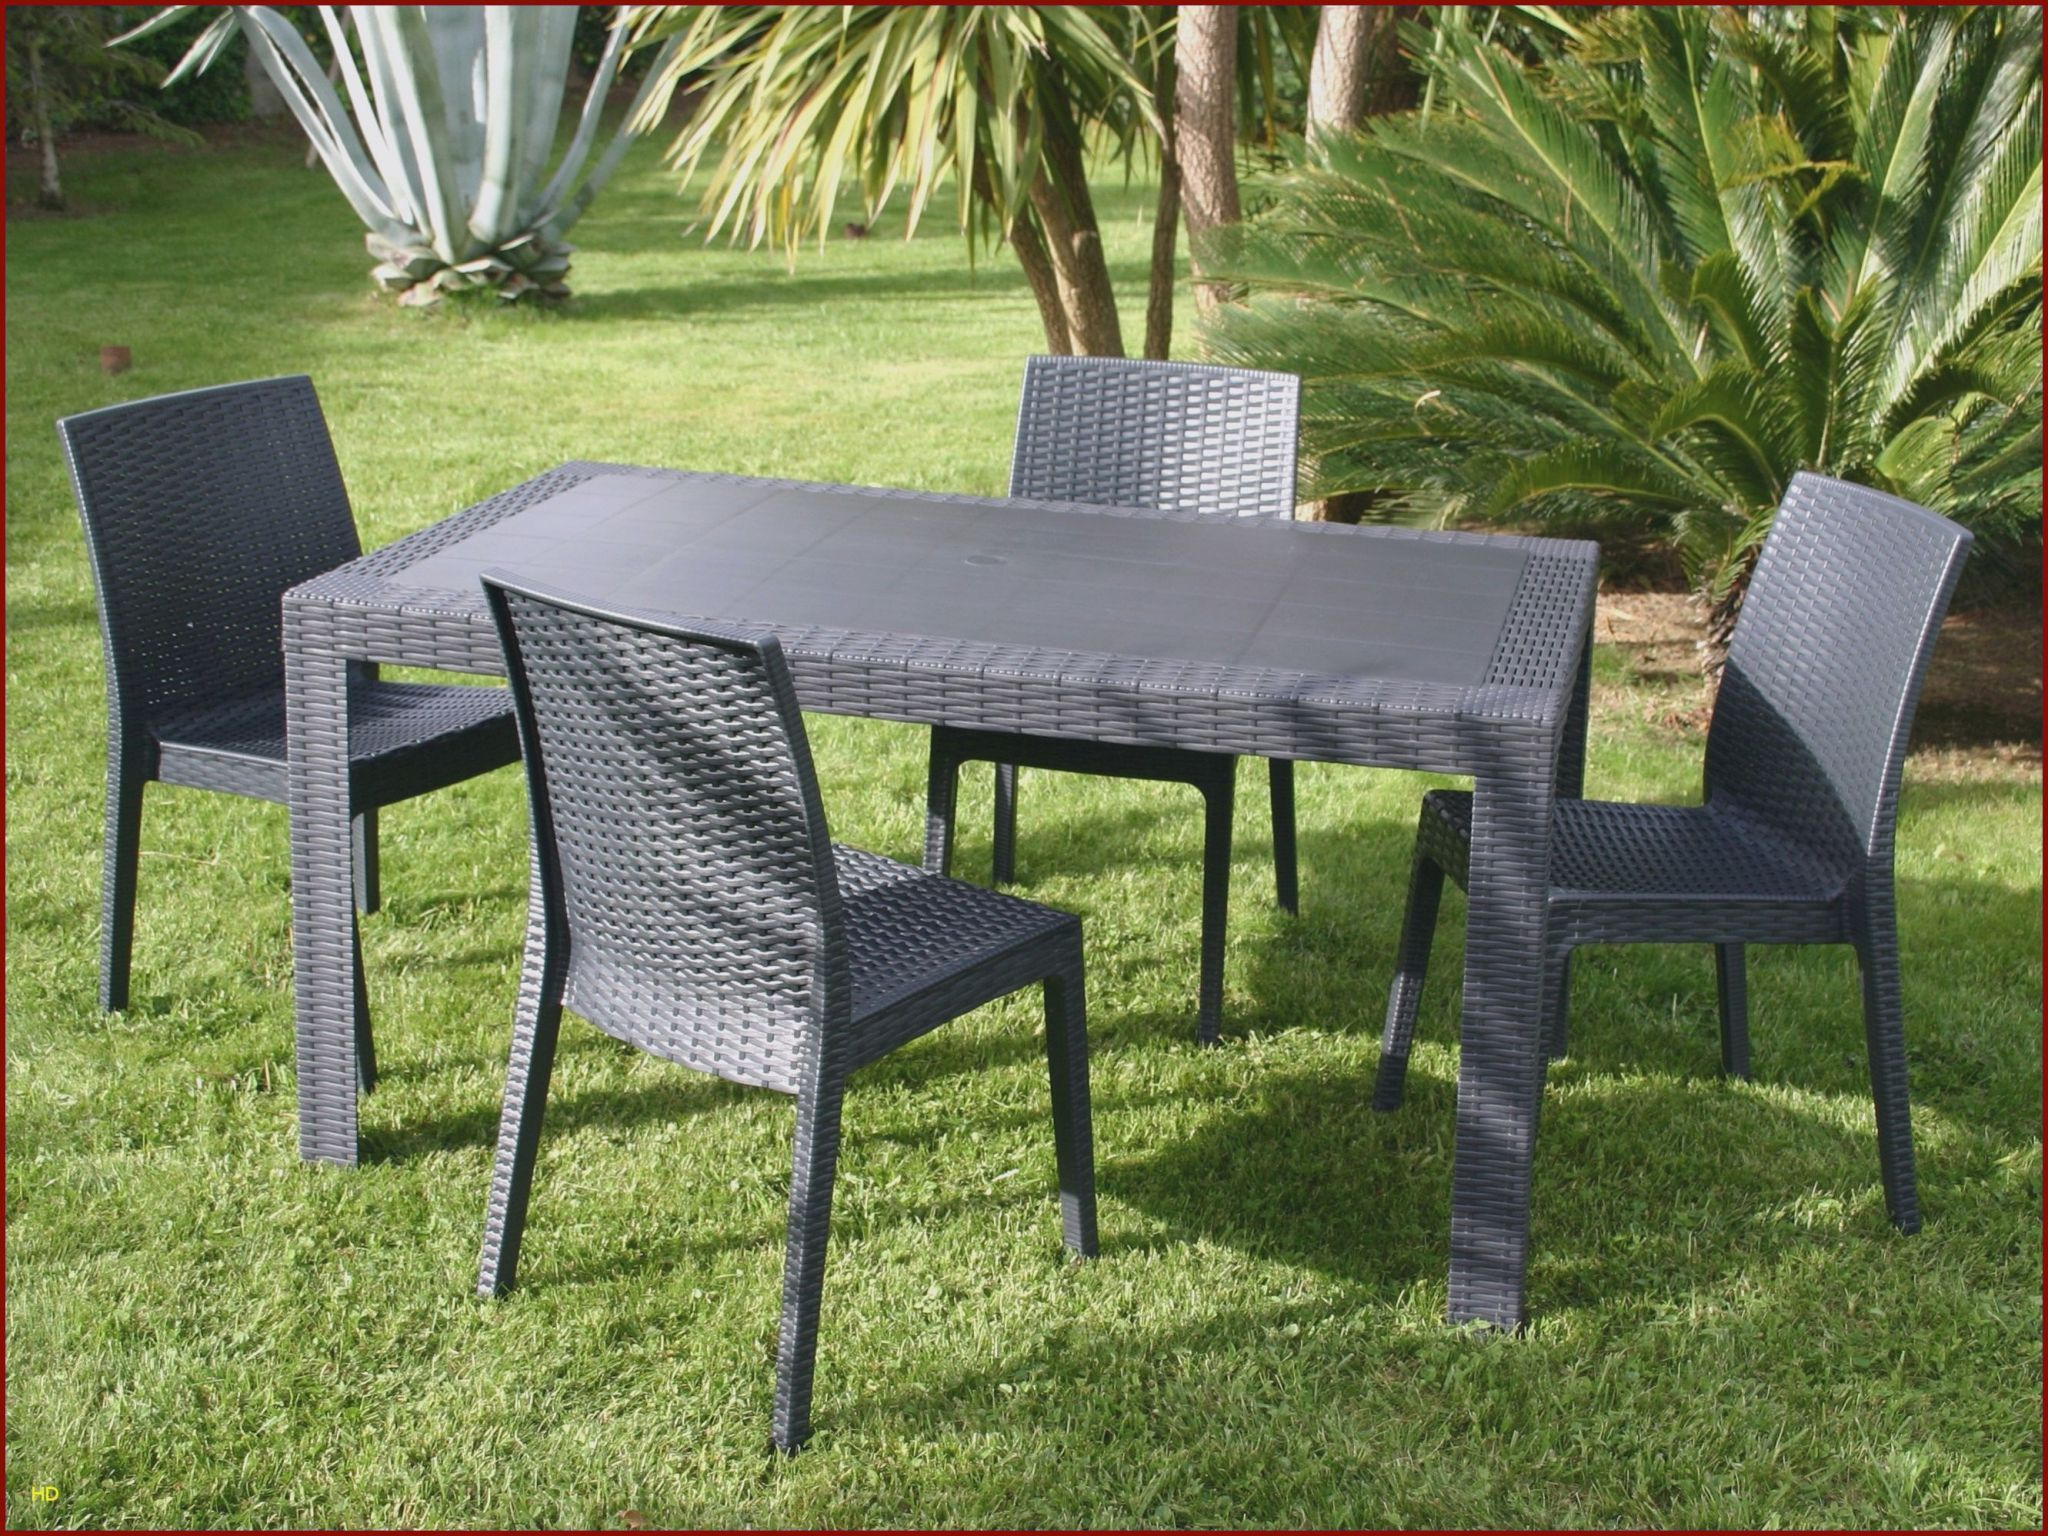 Leroy Merlin Chaise De Jardin Luxe Chaises Luxe Chaise Ice 0d Table Jardin Resine Lovely Of 32 Luxe Leroy Merlin Chaise De Jardin